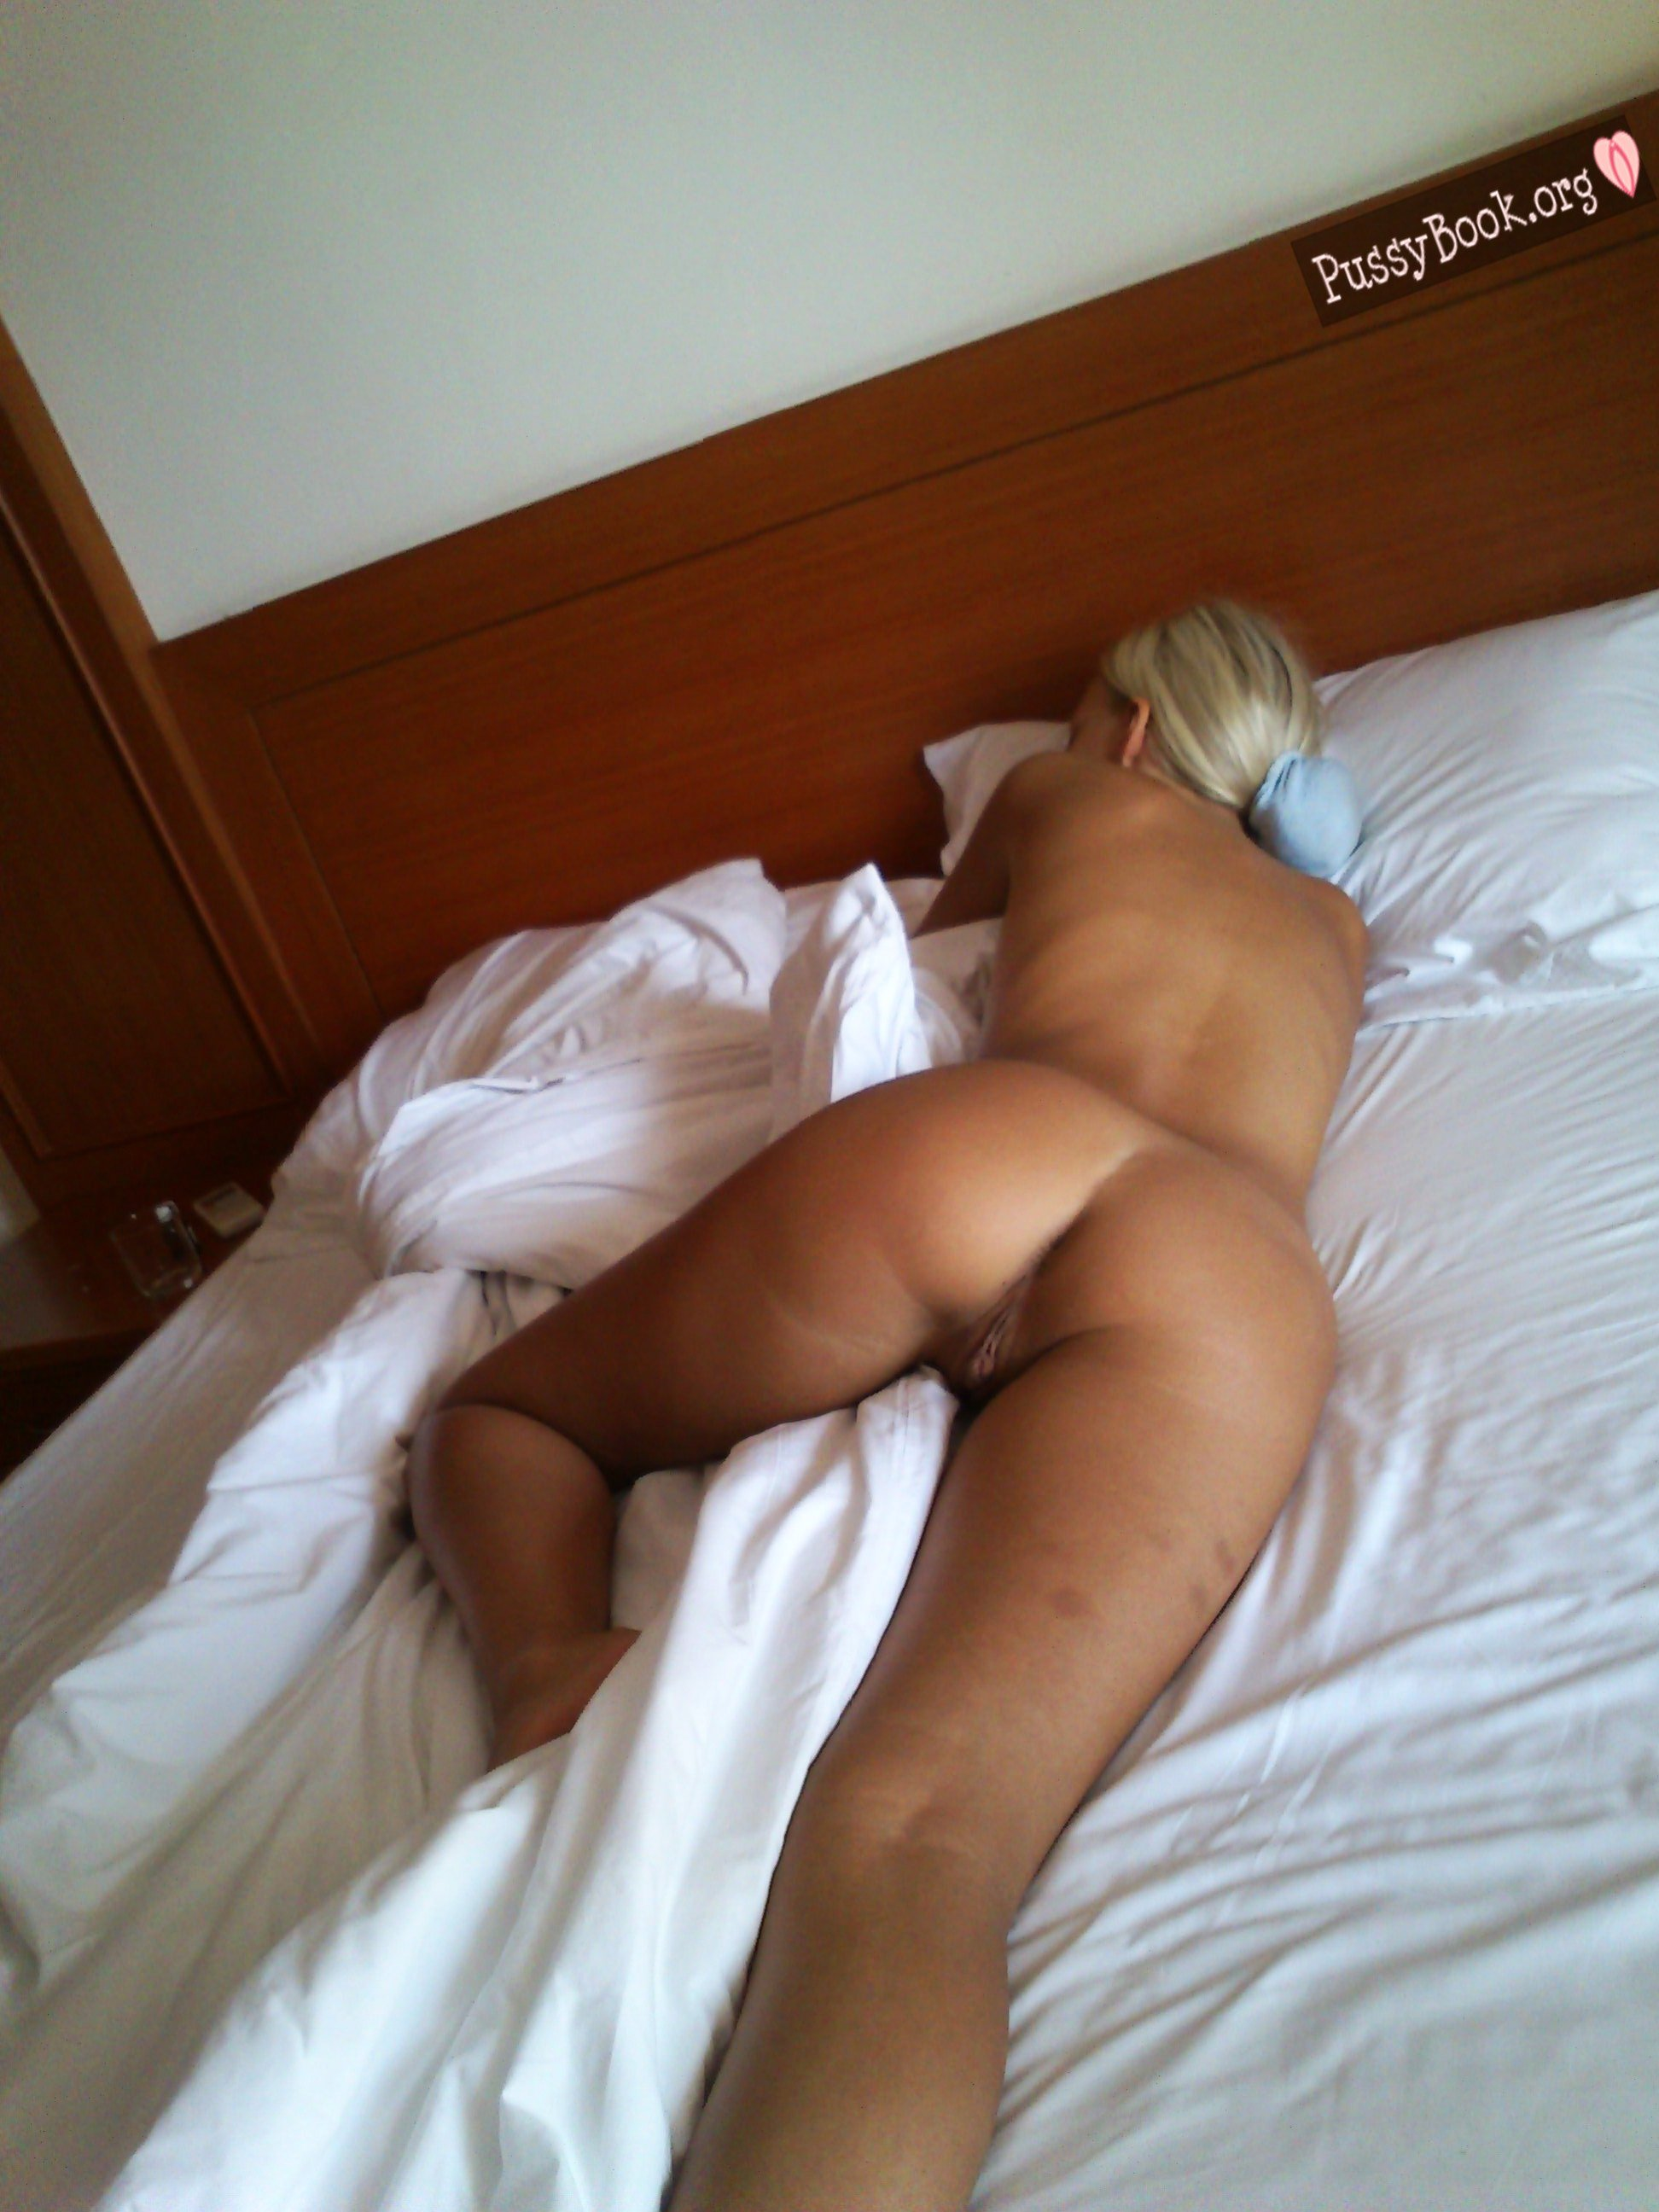 Blonde girls sleeping nude apologise, but